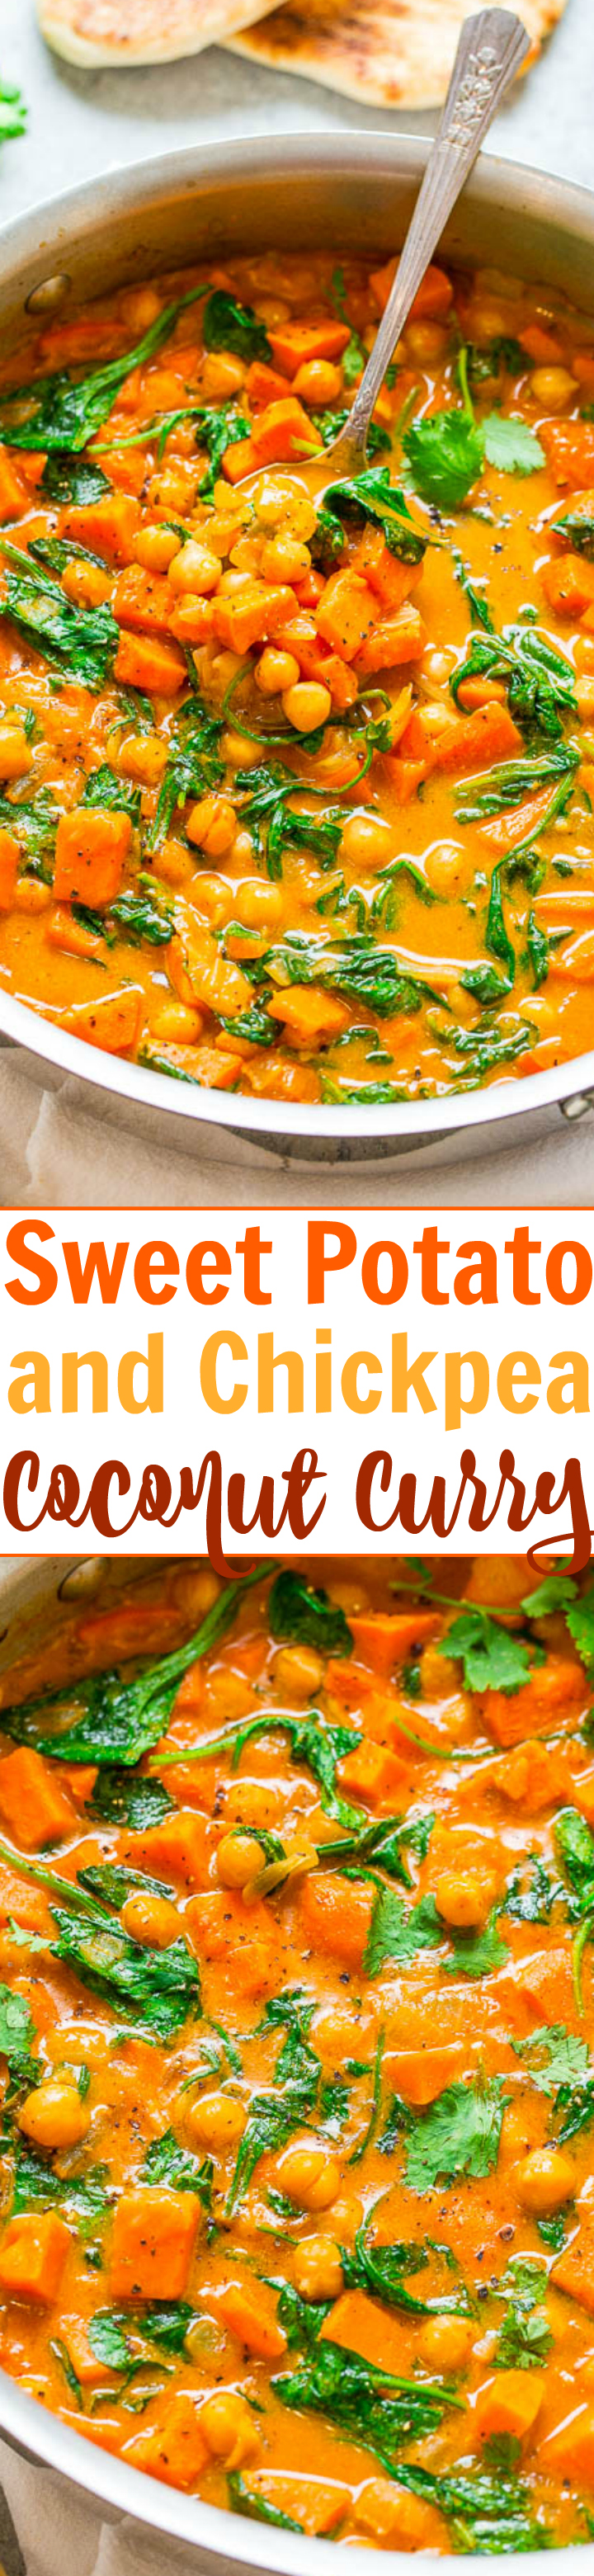 Sweet Potato and Chickpea Coconut Curry - An EASY one-skillet curry that's ready in 30 minutes and is layered with so many fabulous flavors!! HEALTHY comfort food that tastes AMAZING!!